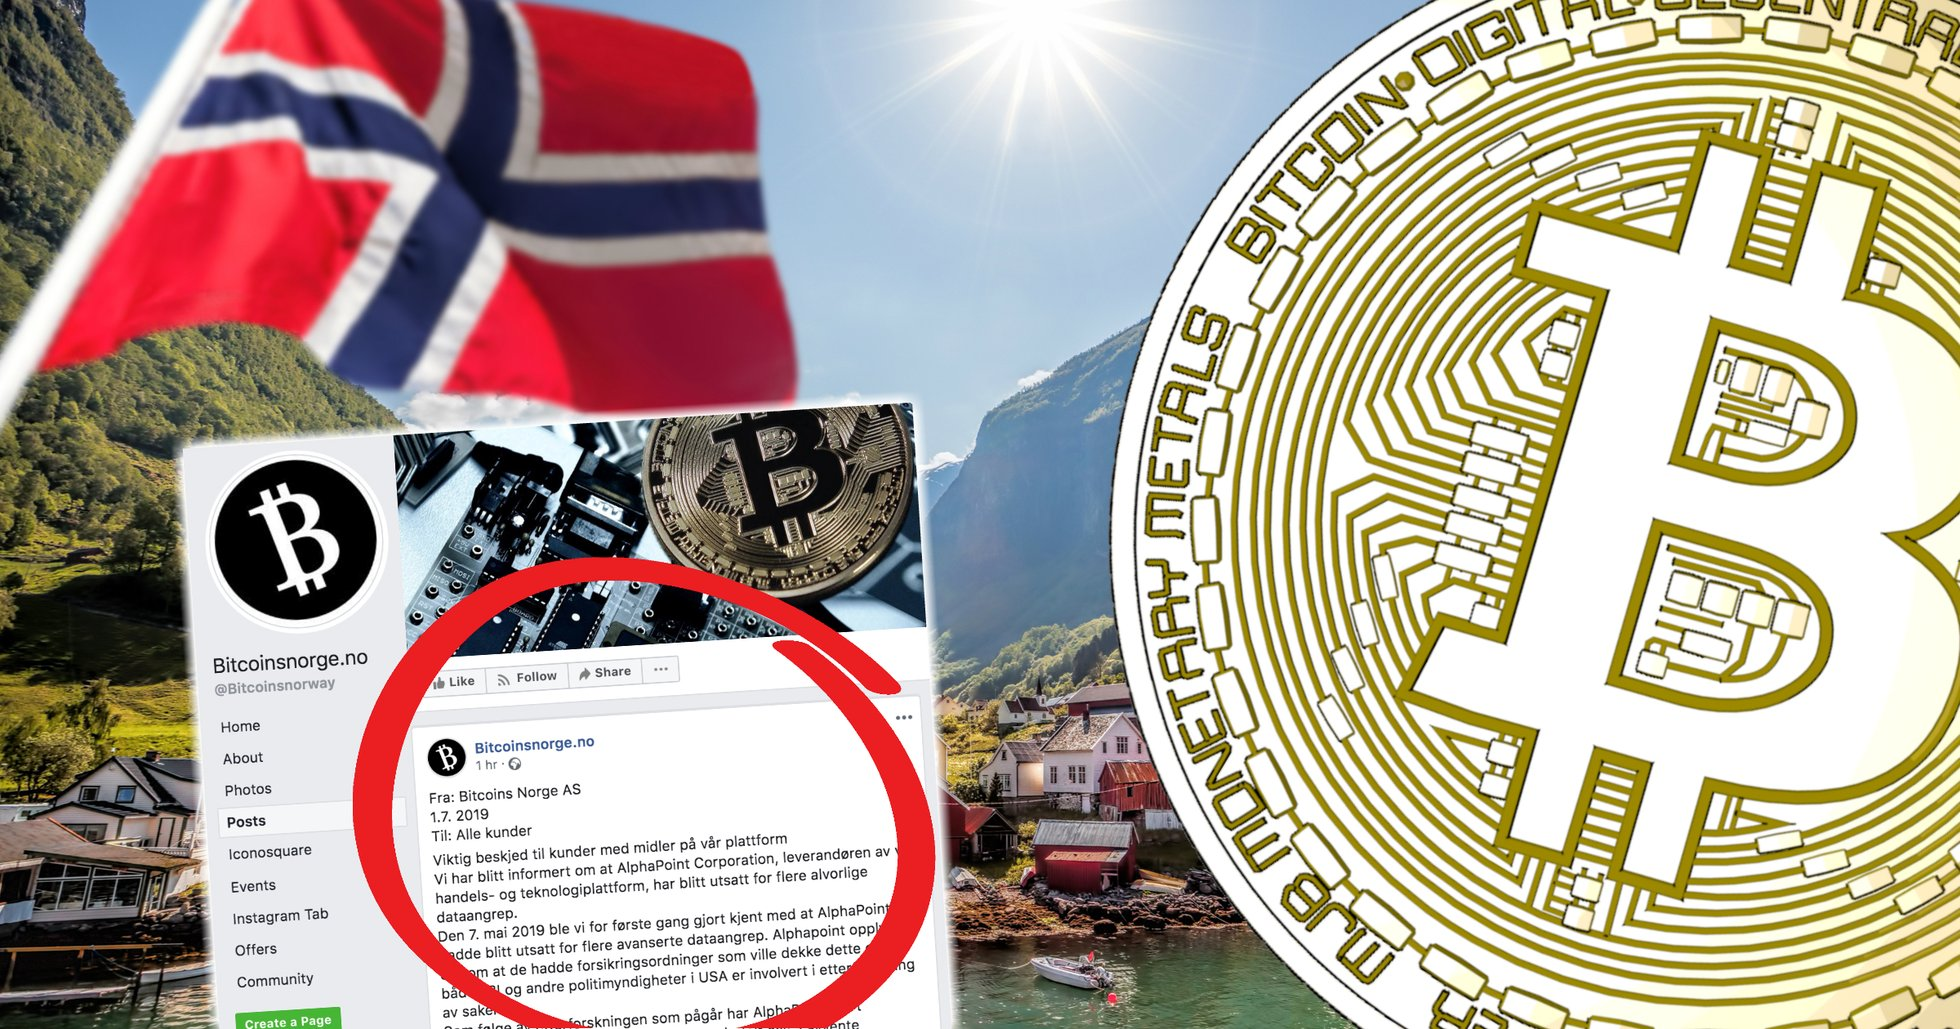 Norwegian crypto exchange wants to force users to sell their cryptocurrencies.